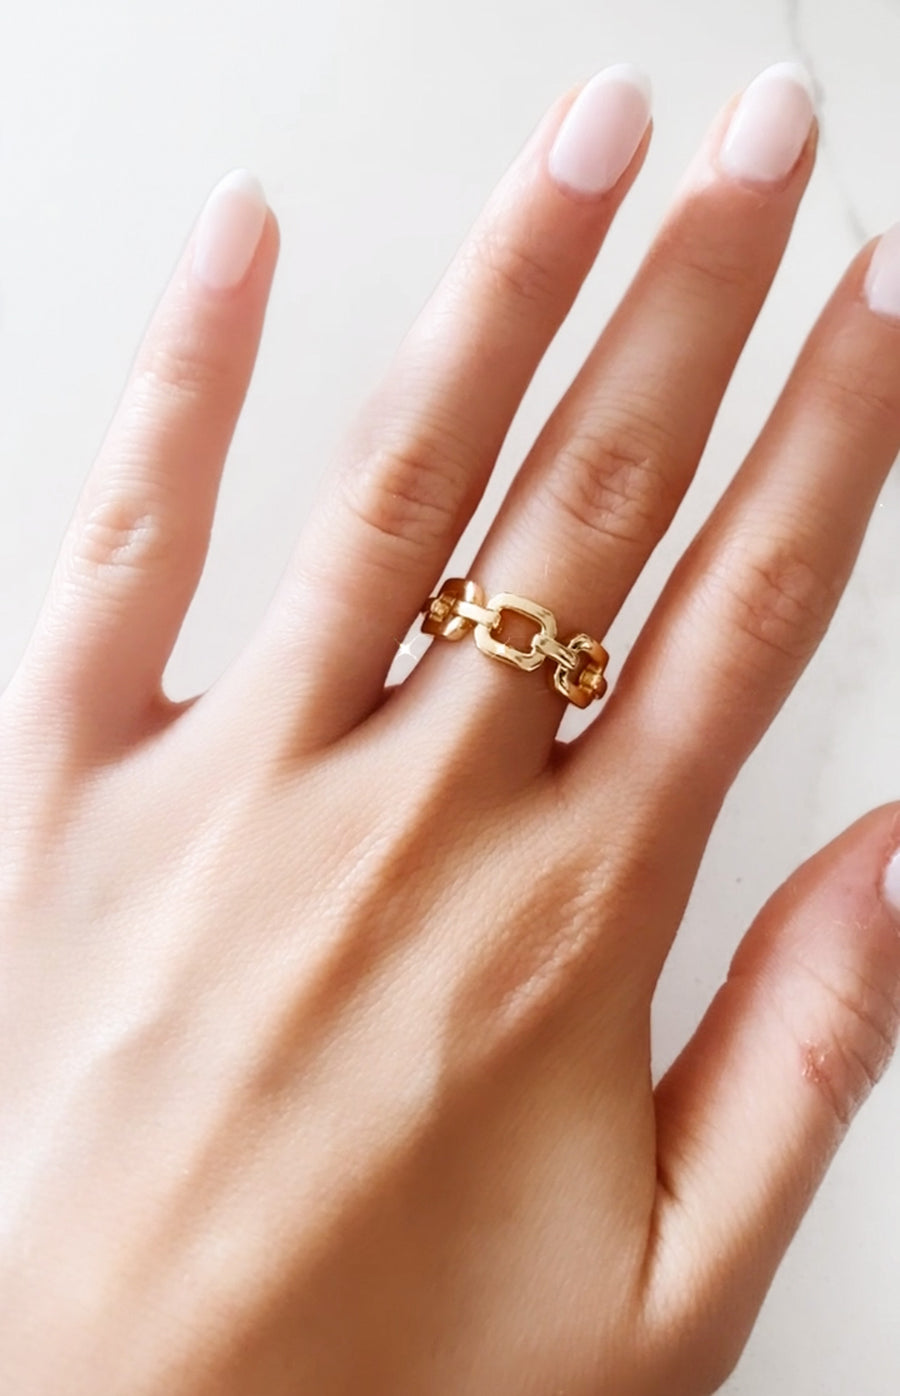 GOLD FILLED CHAIN RING